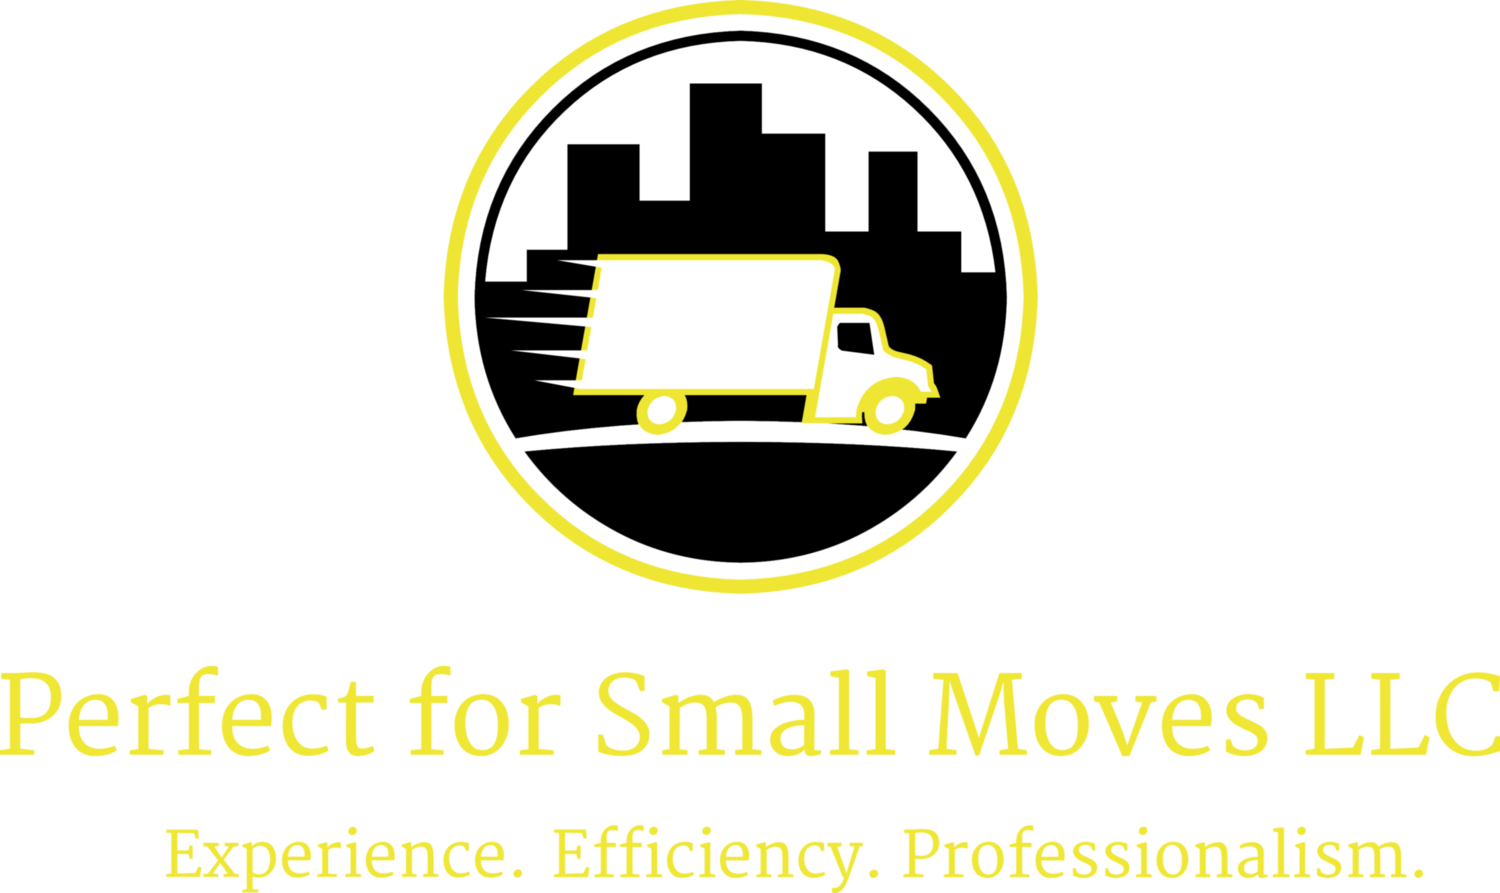 Perfect For Small Moves, LLC